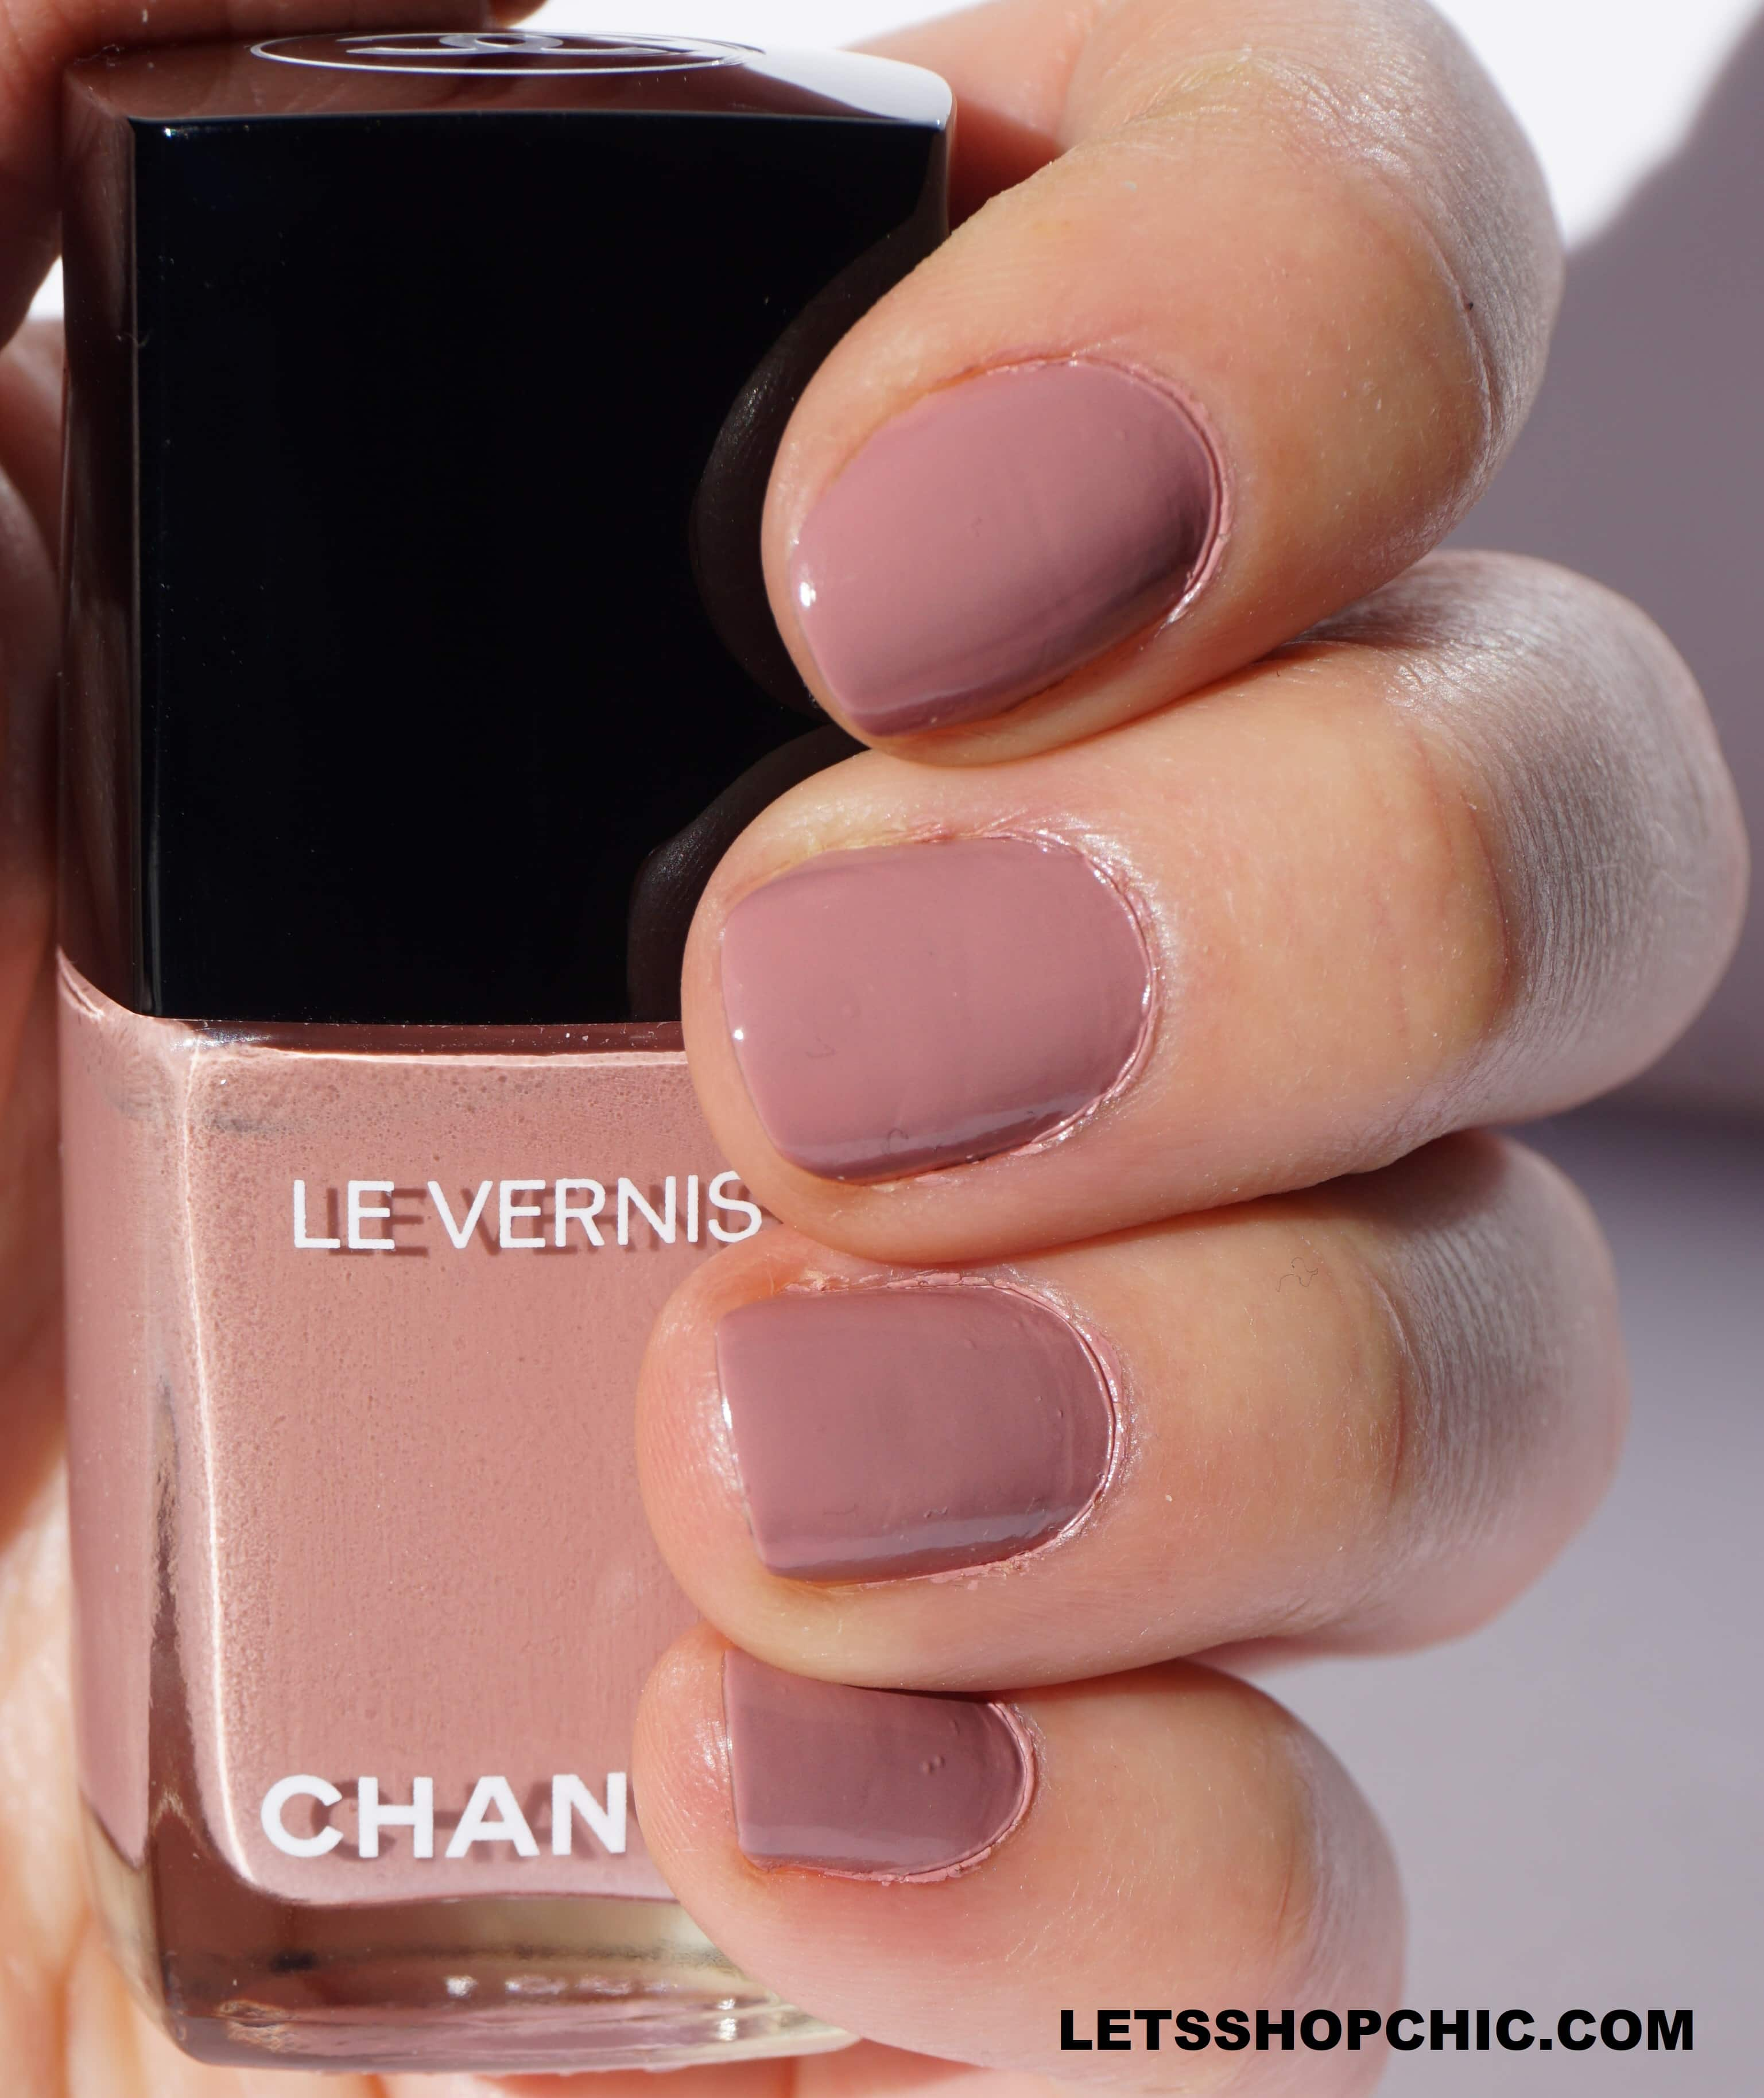 Chanel Le Vernis nail polish 735 Daydream